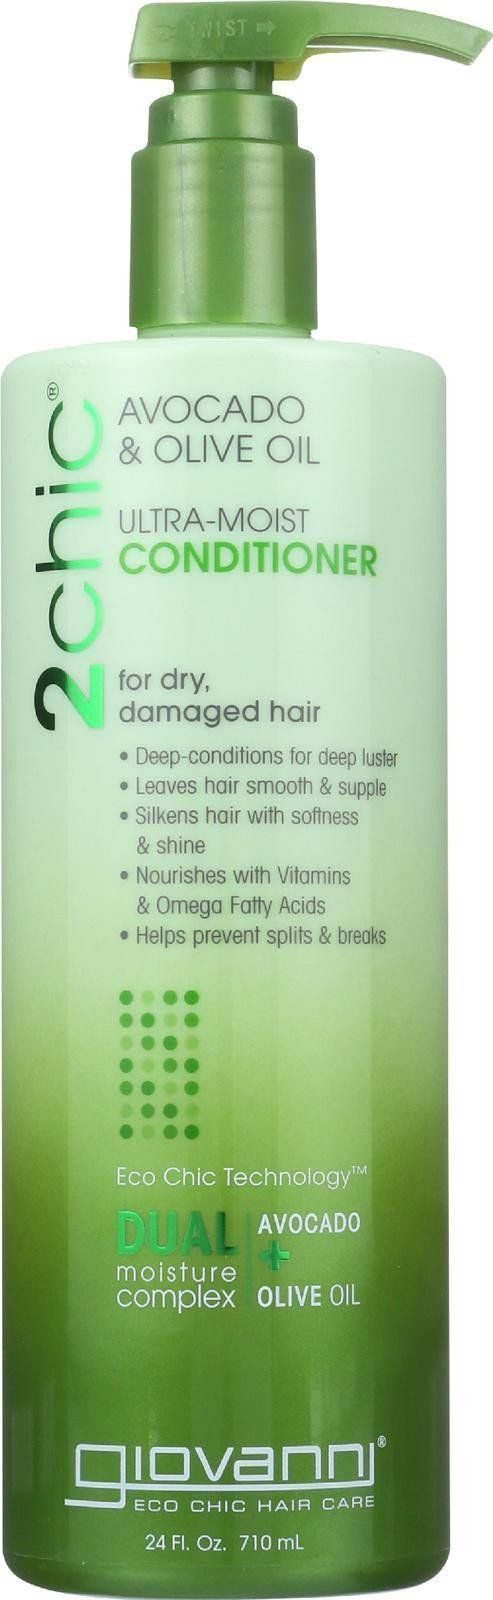 Giovanni Hair Care Products Conditioner - 2chic Avocado And Olive Oil - 24 Fl Oz #BlackHairCareProducts